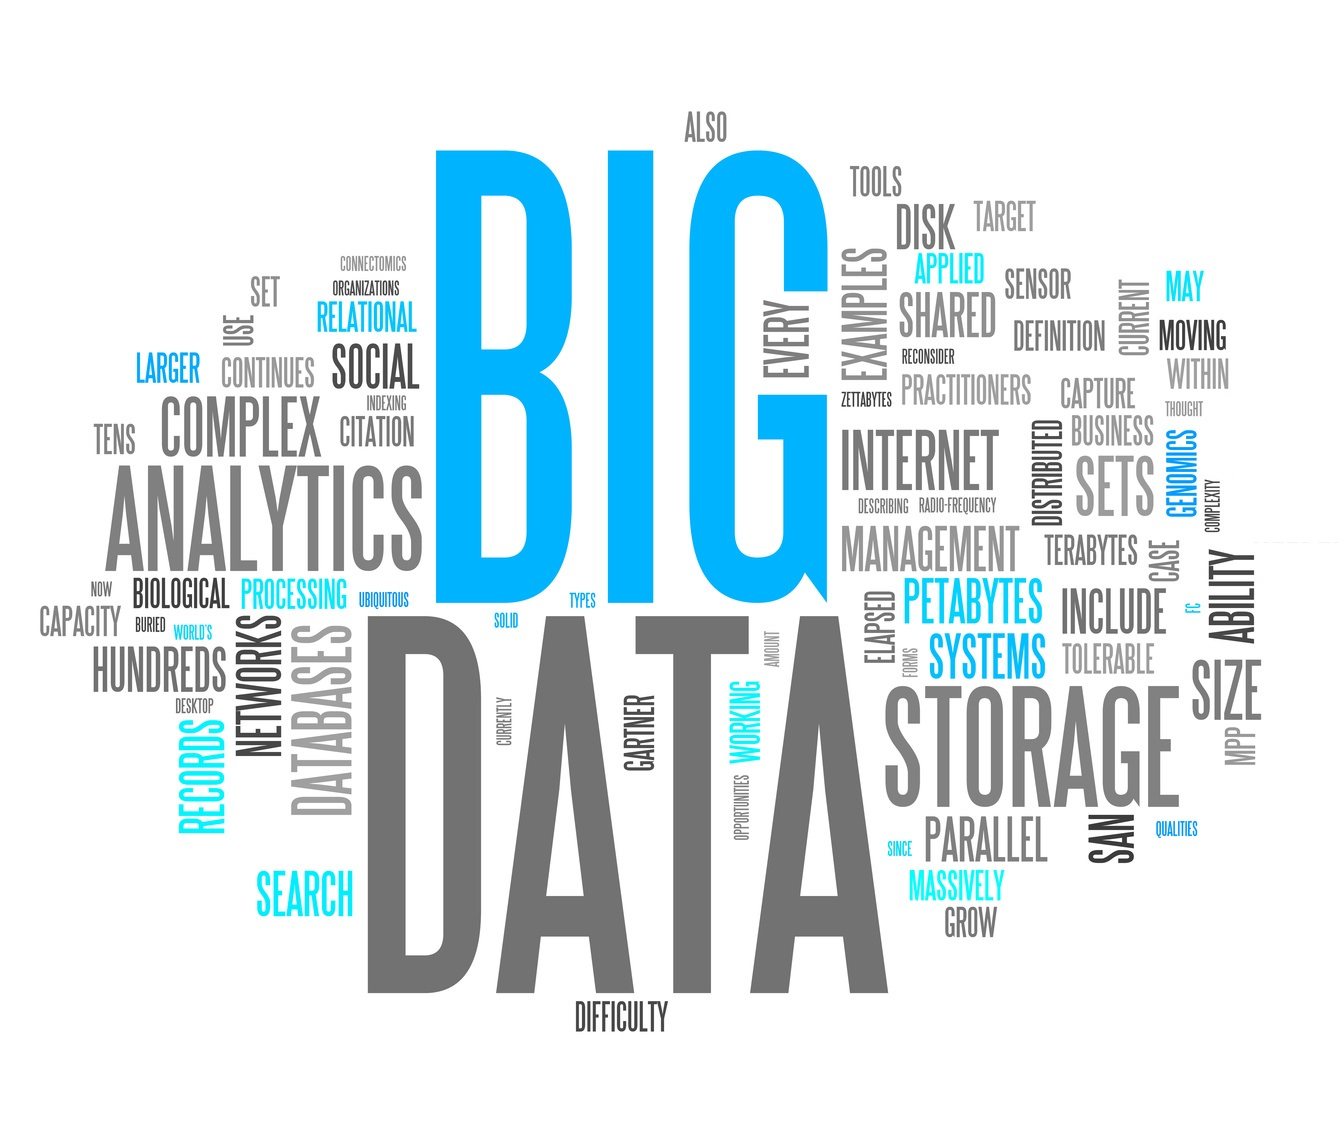 Unearthing big myths about big data